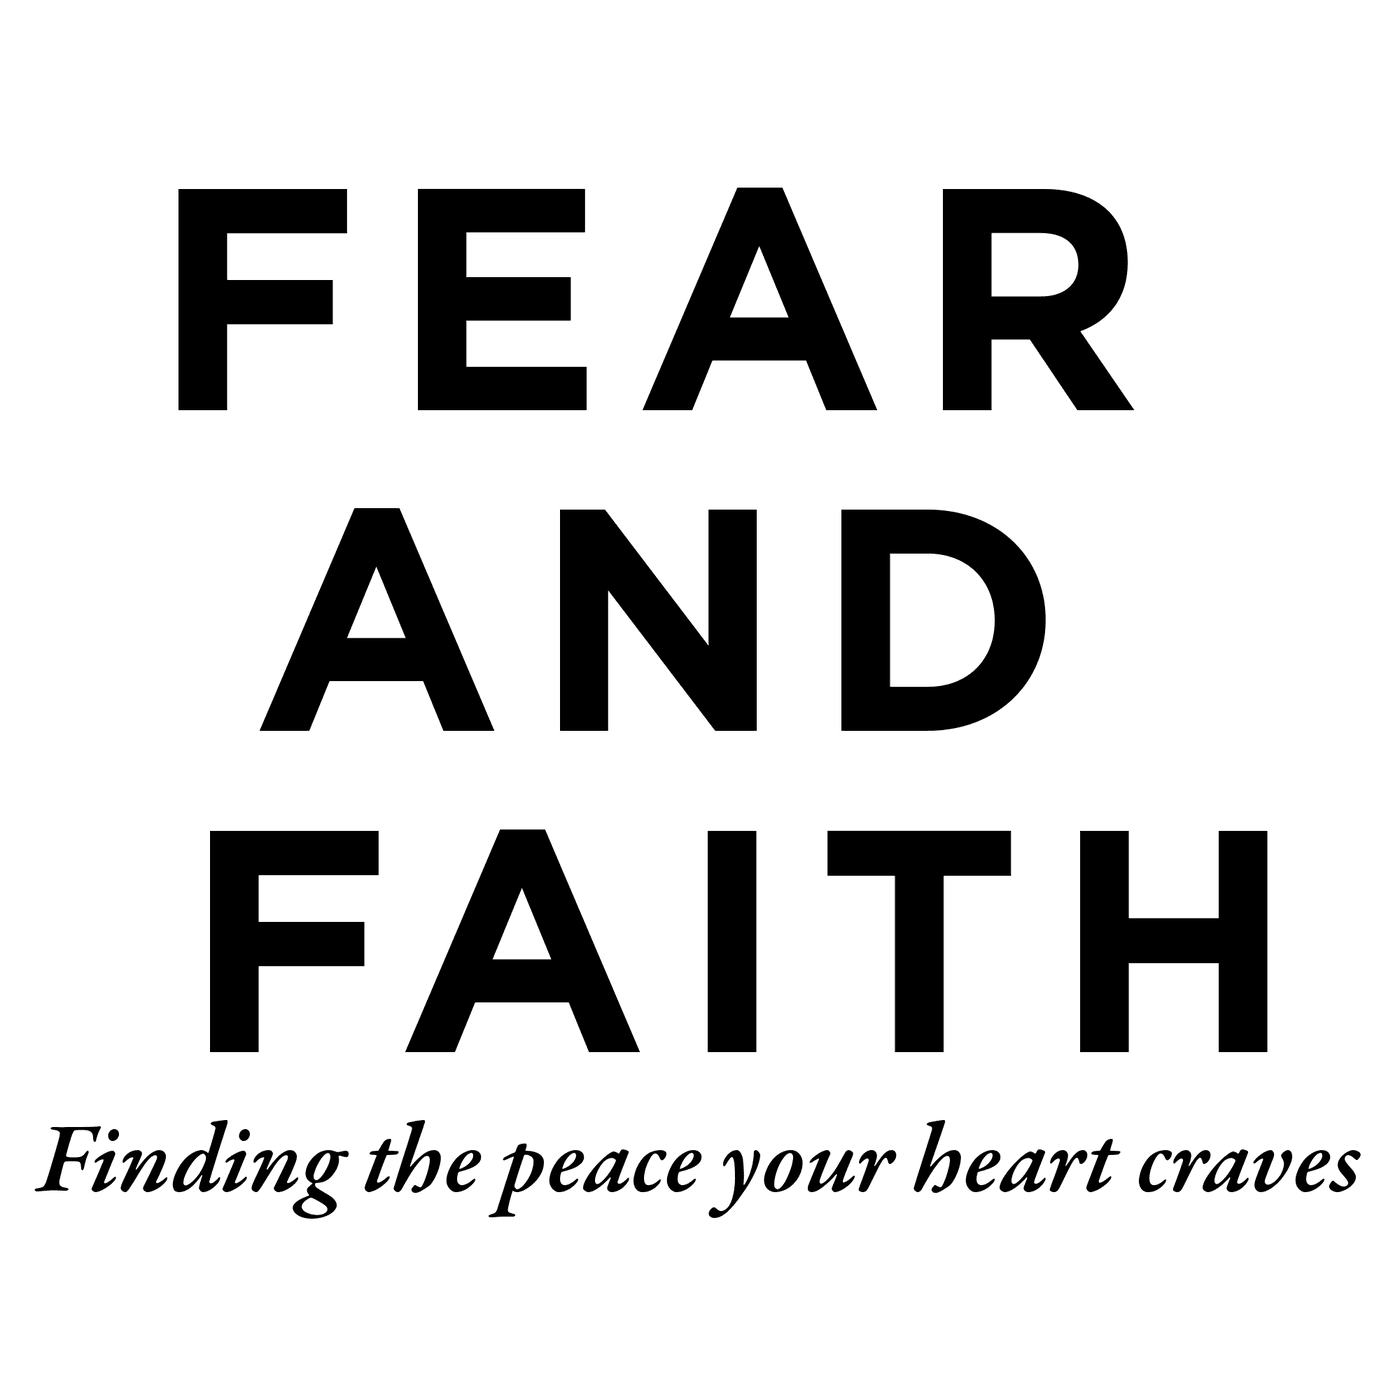 FEAR AND FAITH finding the peace your heart craves